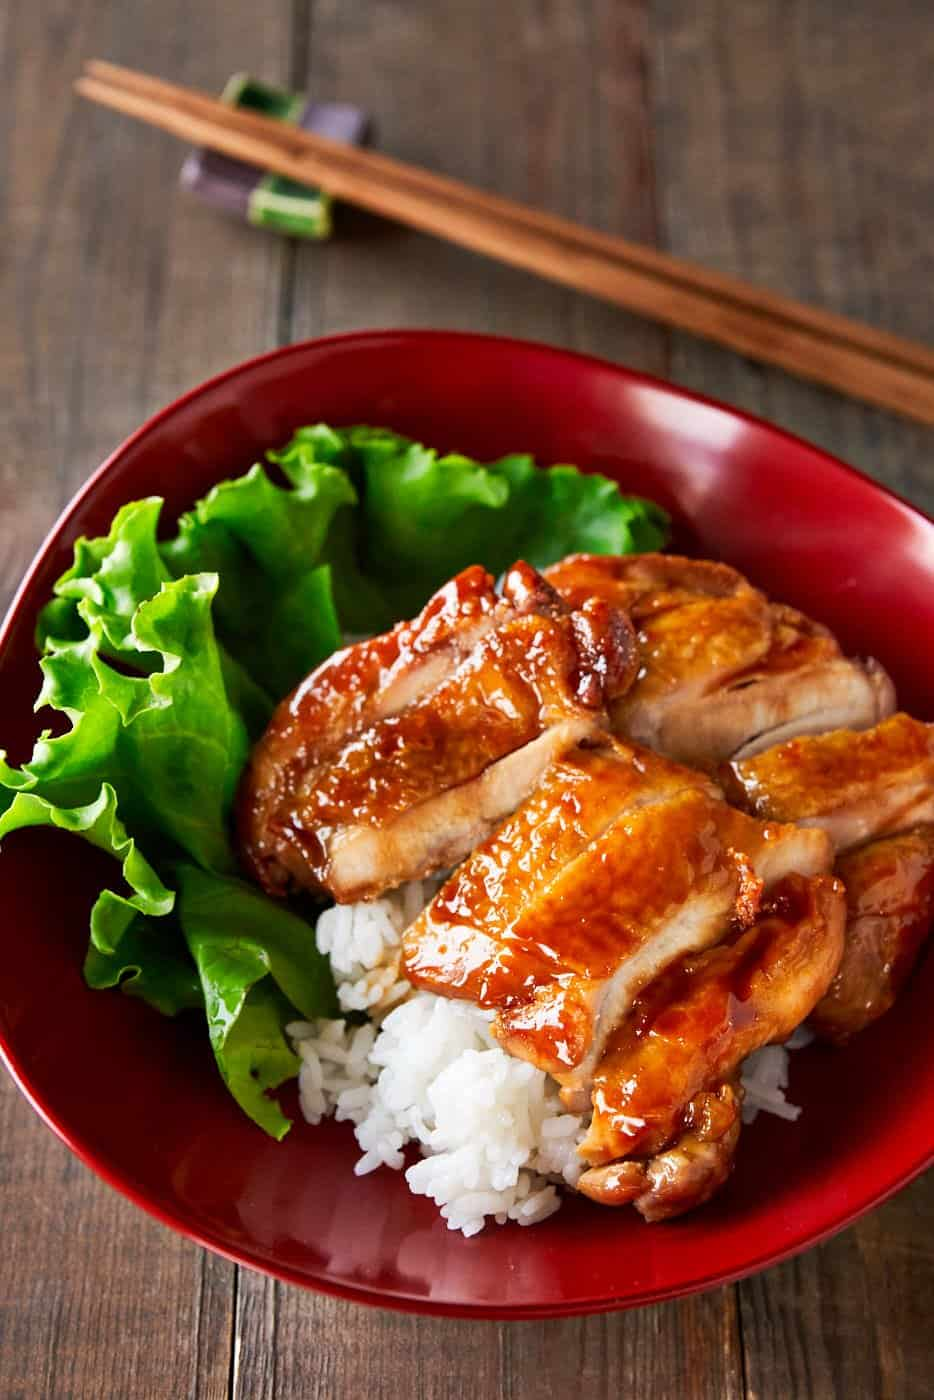 With just 4 basic ingredients, Japanese Chicken Teriyaki is as simple to make as it is delicious. The trick is to caramelize the sauce into a glossy glaze that sticks to the chicken like white on rice.